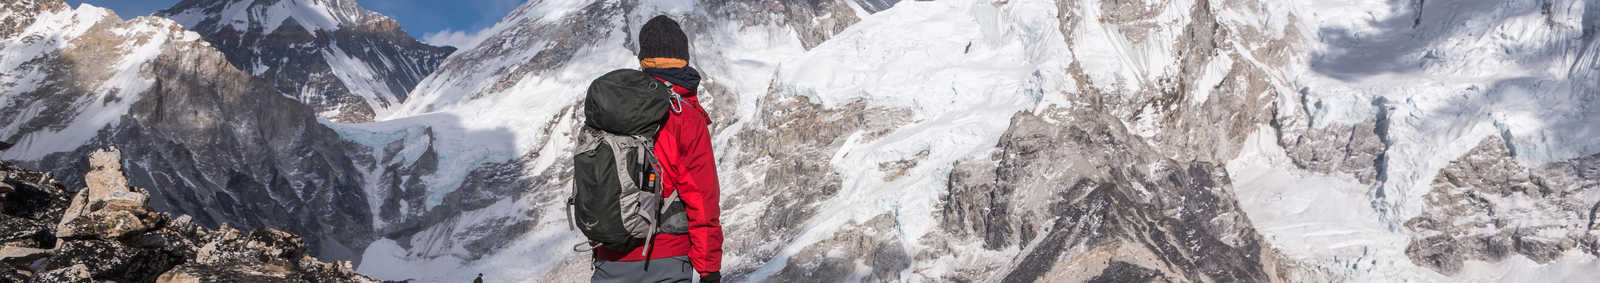 traveller looking at Mount Everest